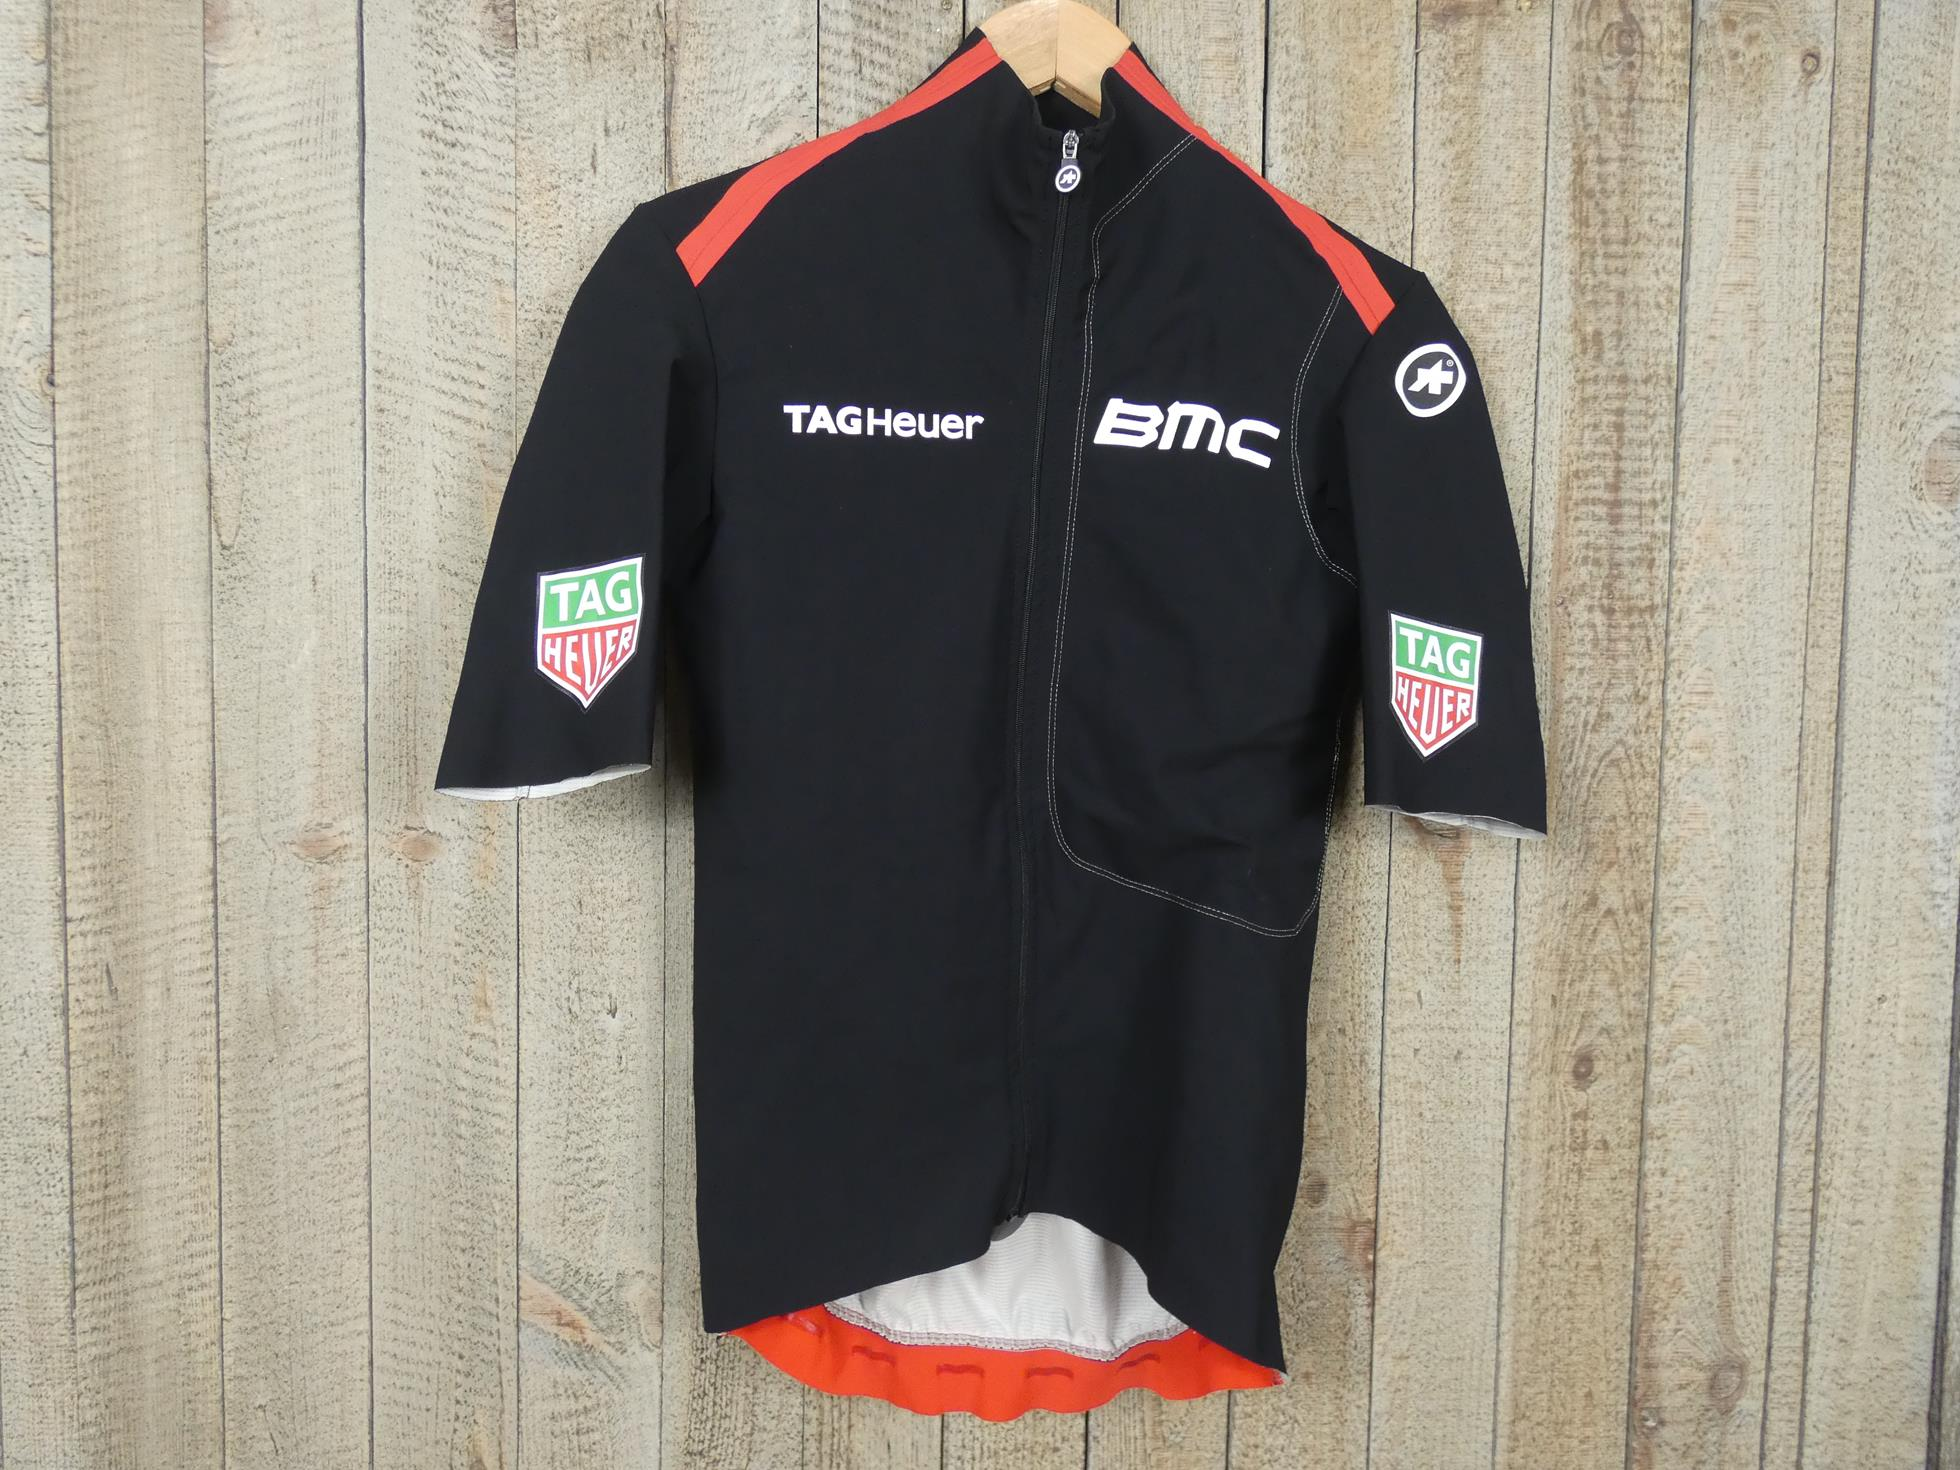 Liberty RS Thermo Rain Jacket - BMC Team 00001084 (1)